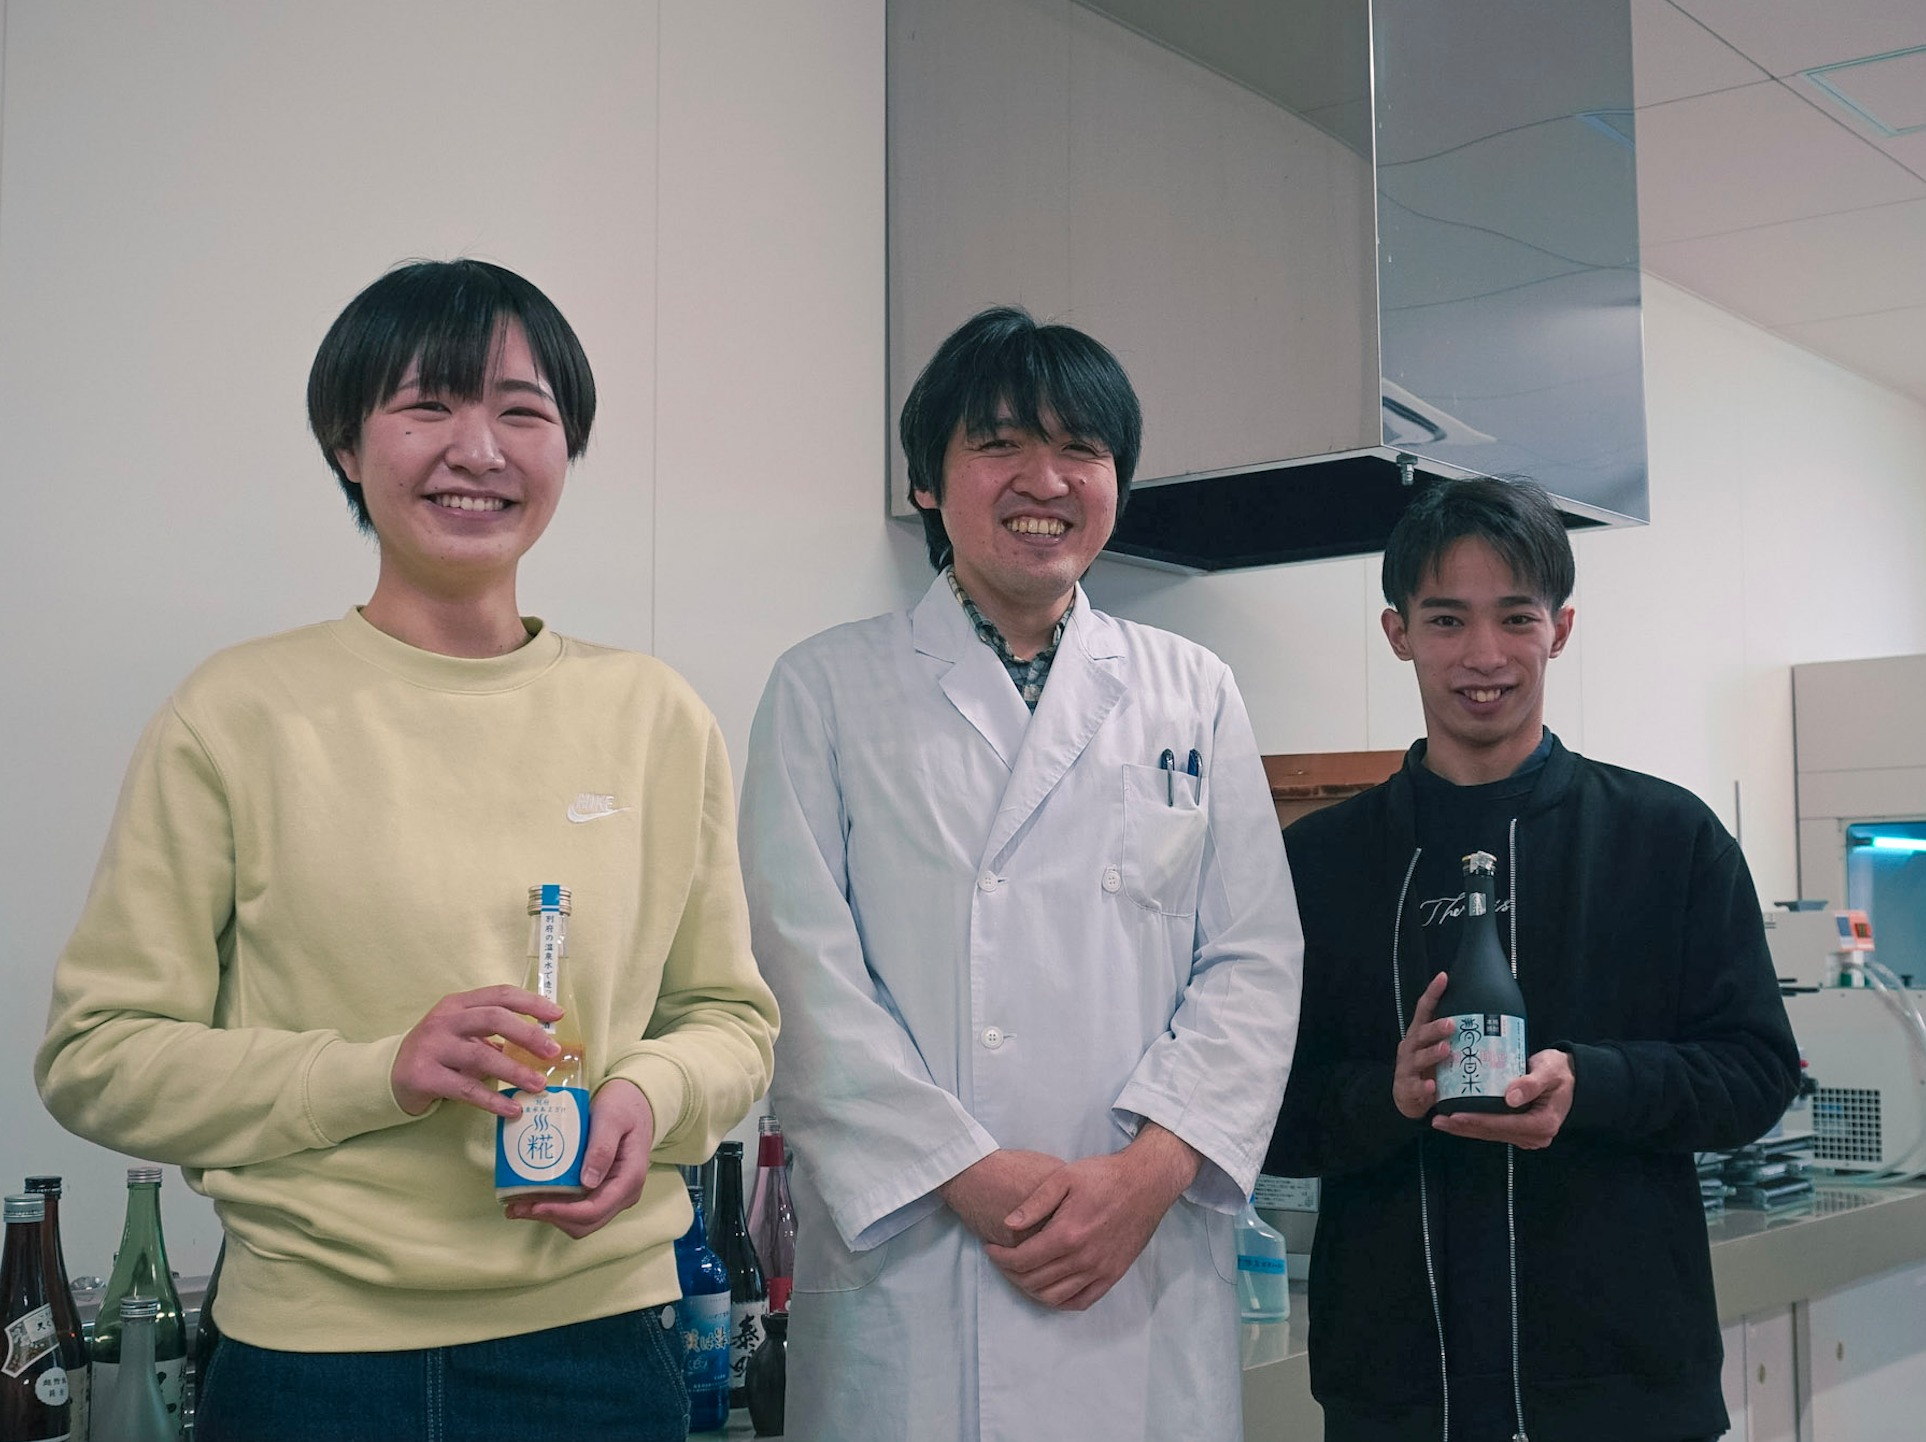 Discover the unknown fermentation world! Beppu University's product development report created through collaboration between universities and companies